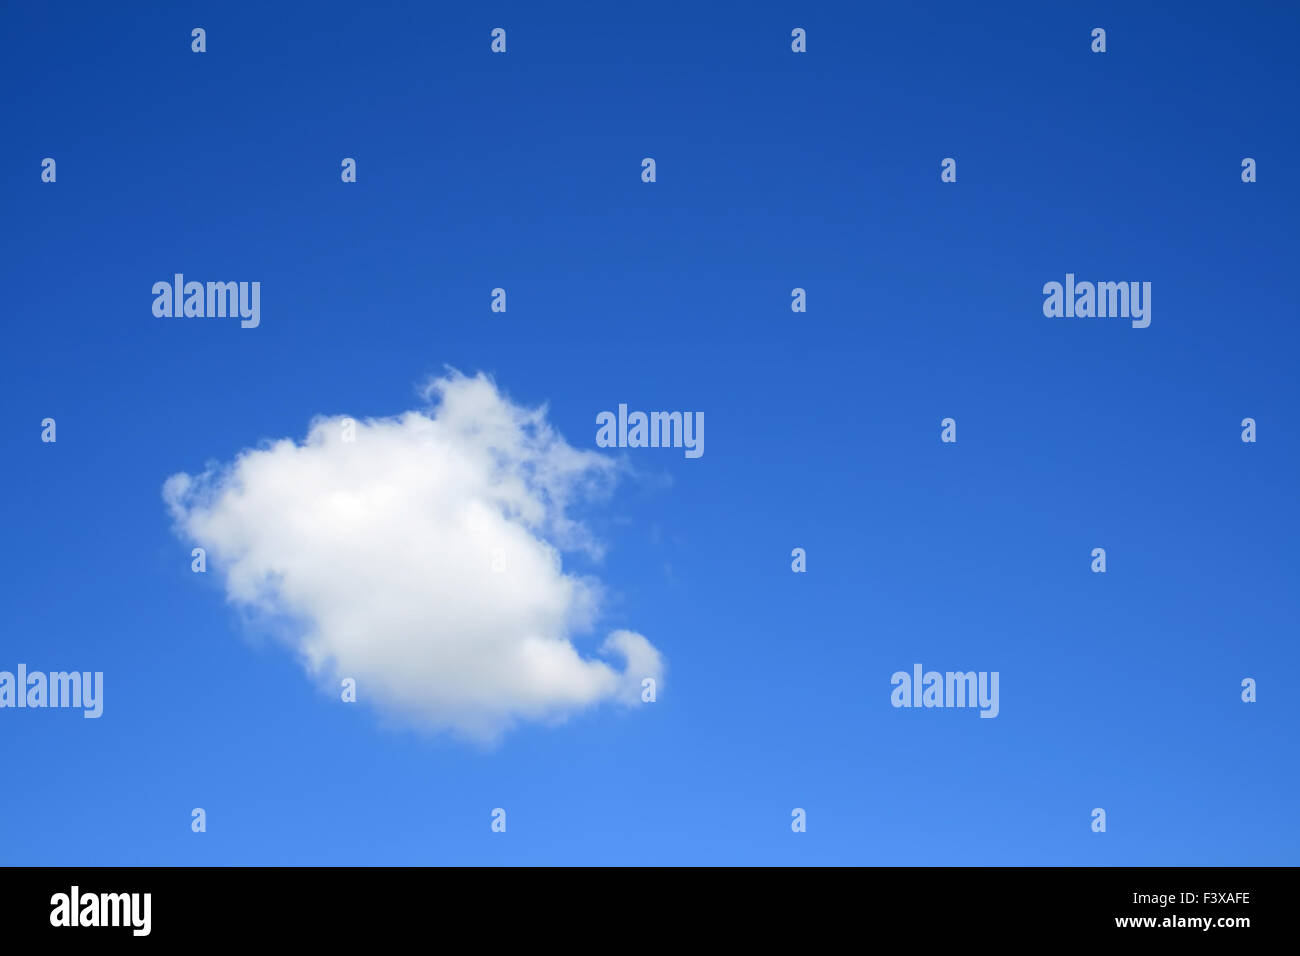 Clear blue sky with one cloud - Stock Image